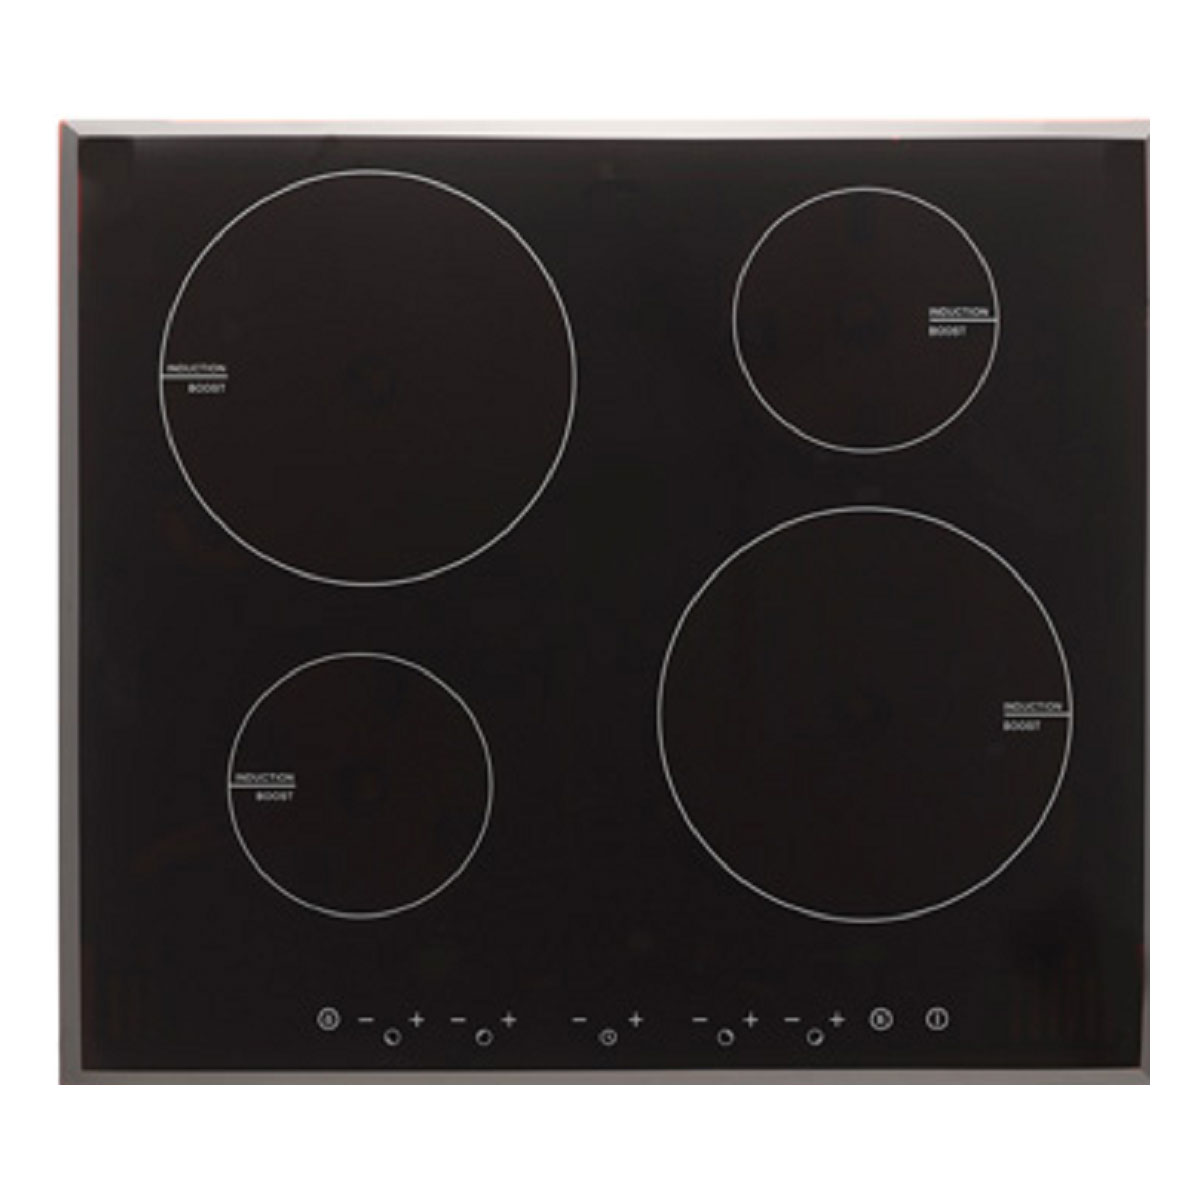 Arc CI6SE1 Induction Cooktop